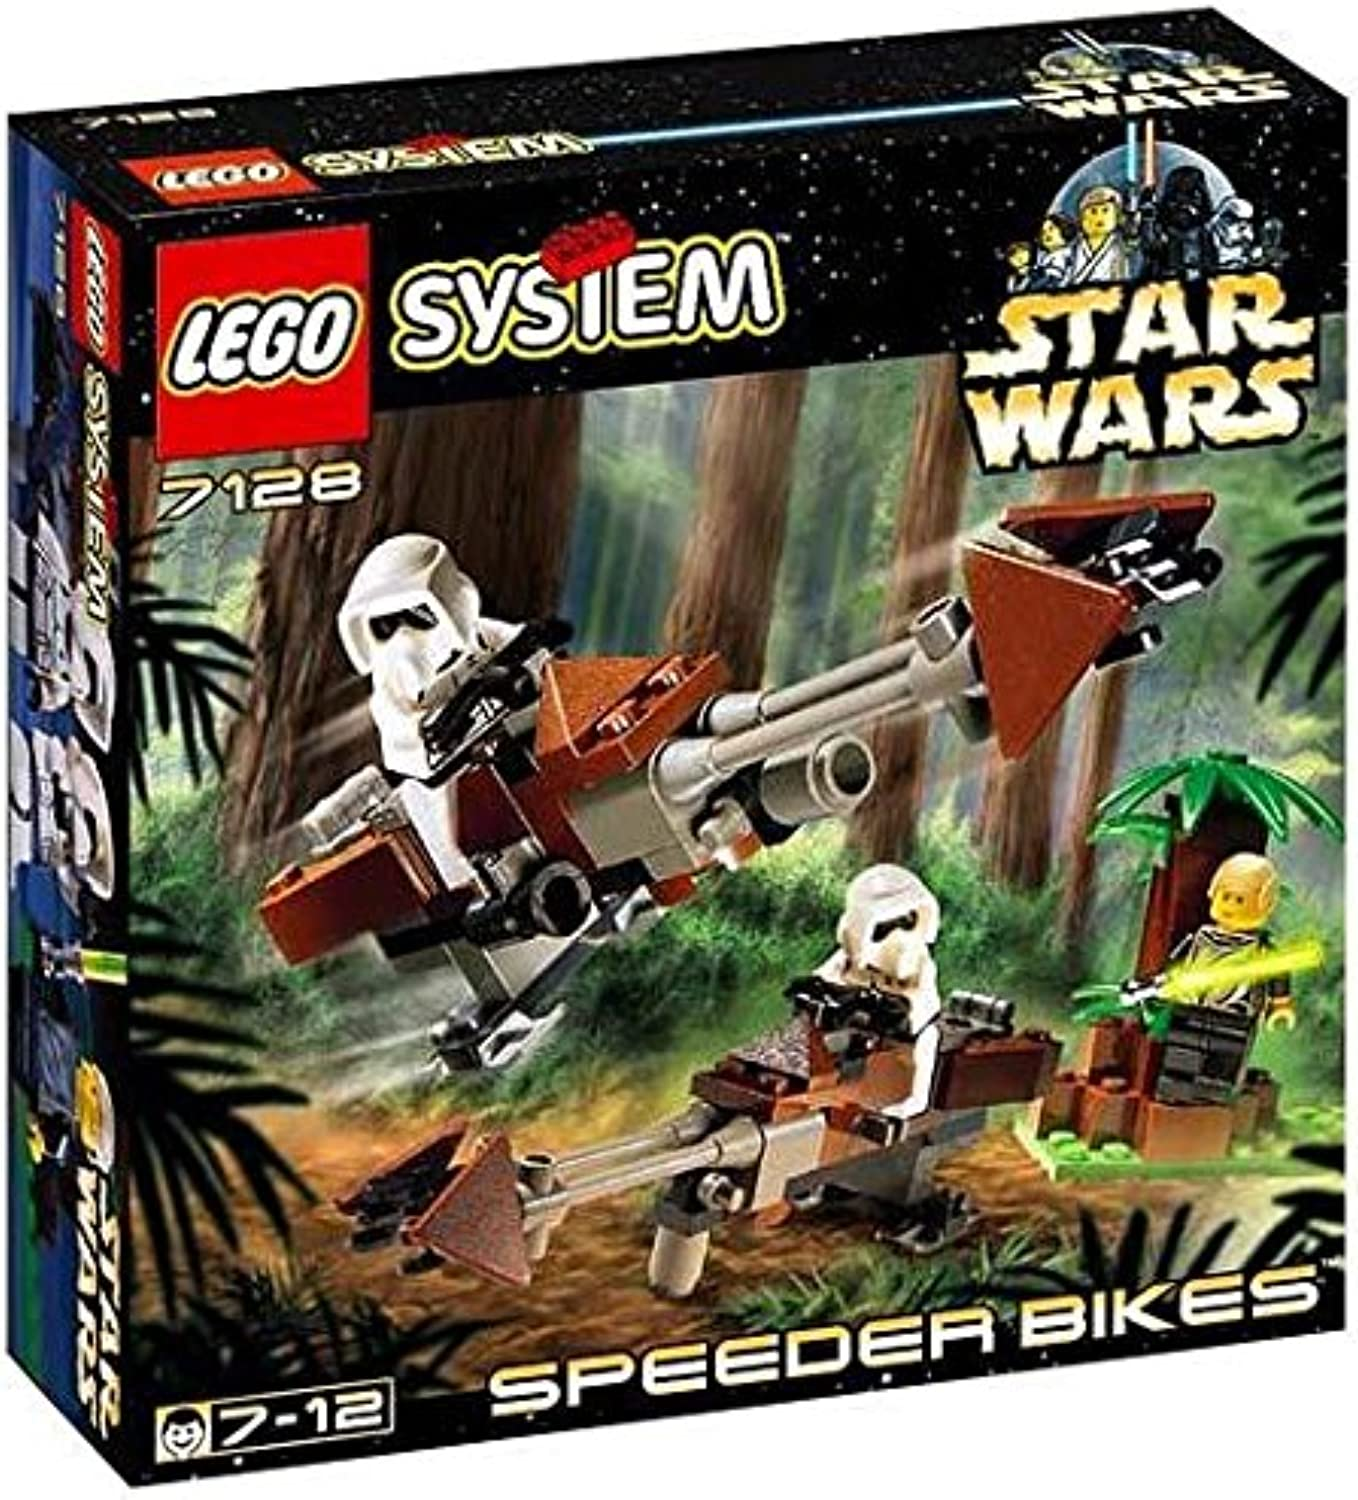 LEGO Star Wars  Speeder Bikes (7128)